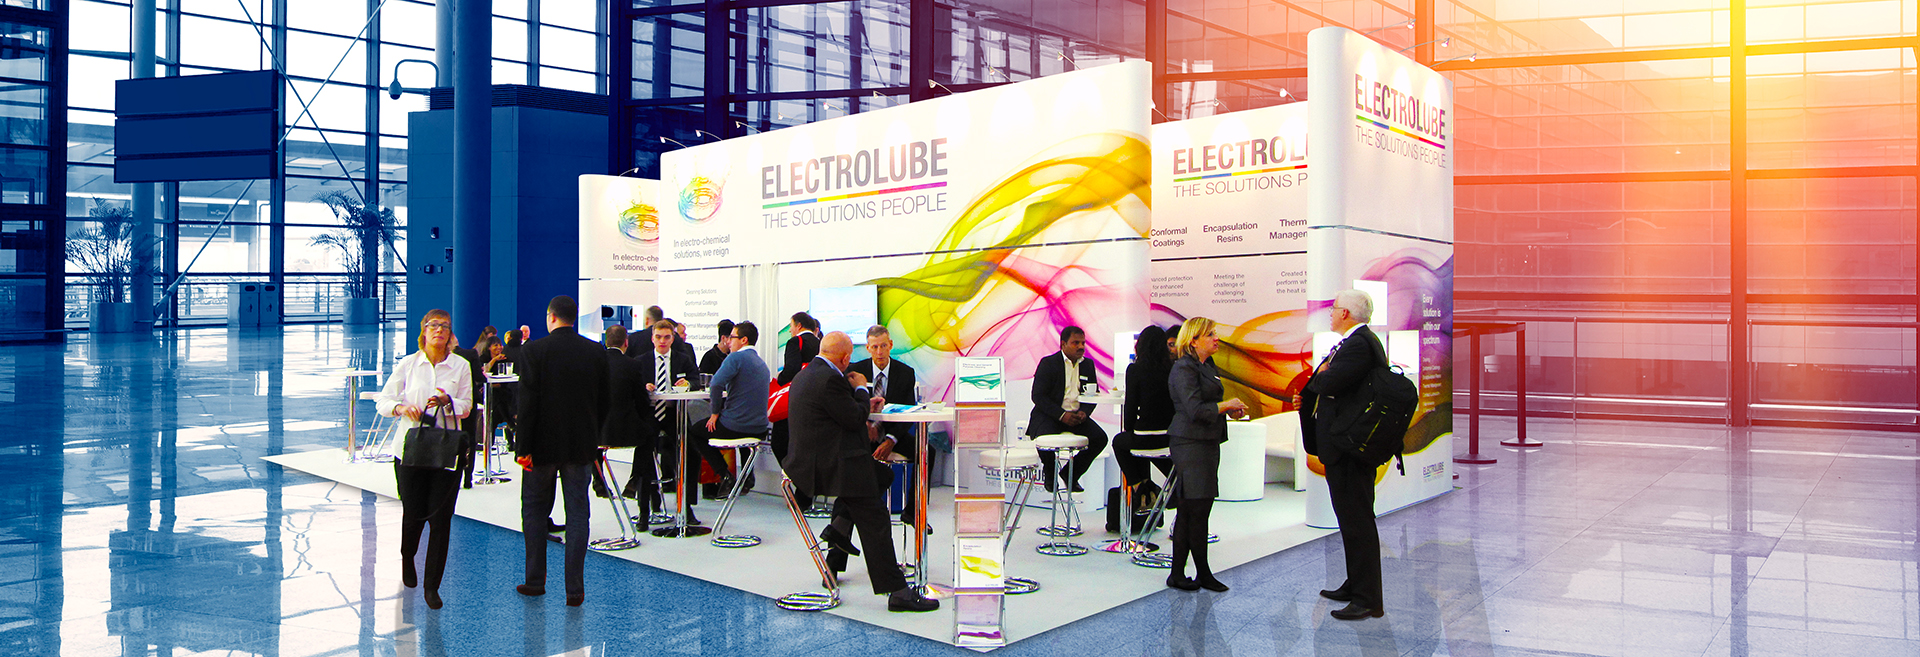 CDM Regulations and Exhibition & Event Stands